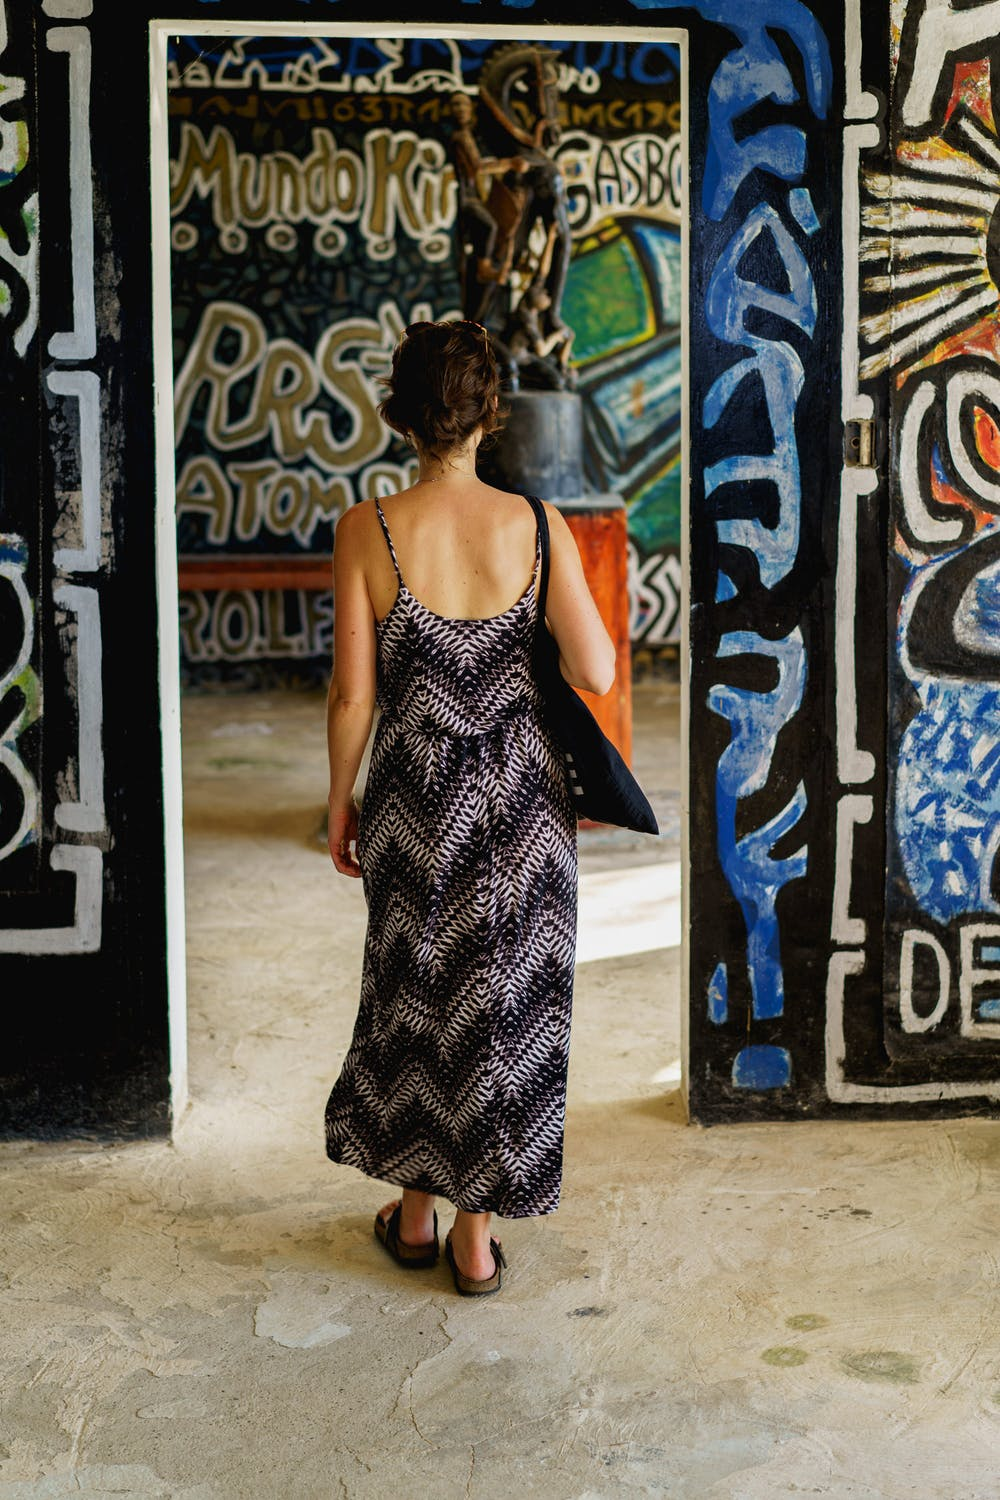 Girl walking through rooms covered in graffiti style painted wall art at Castillo Mundo King